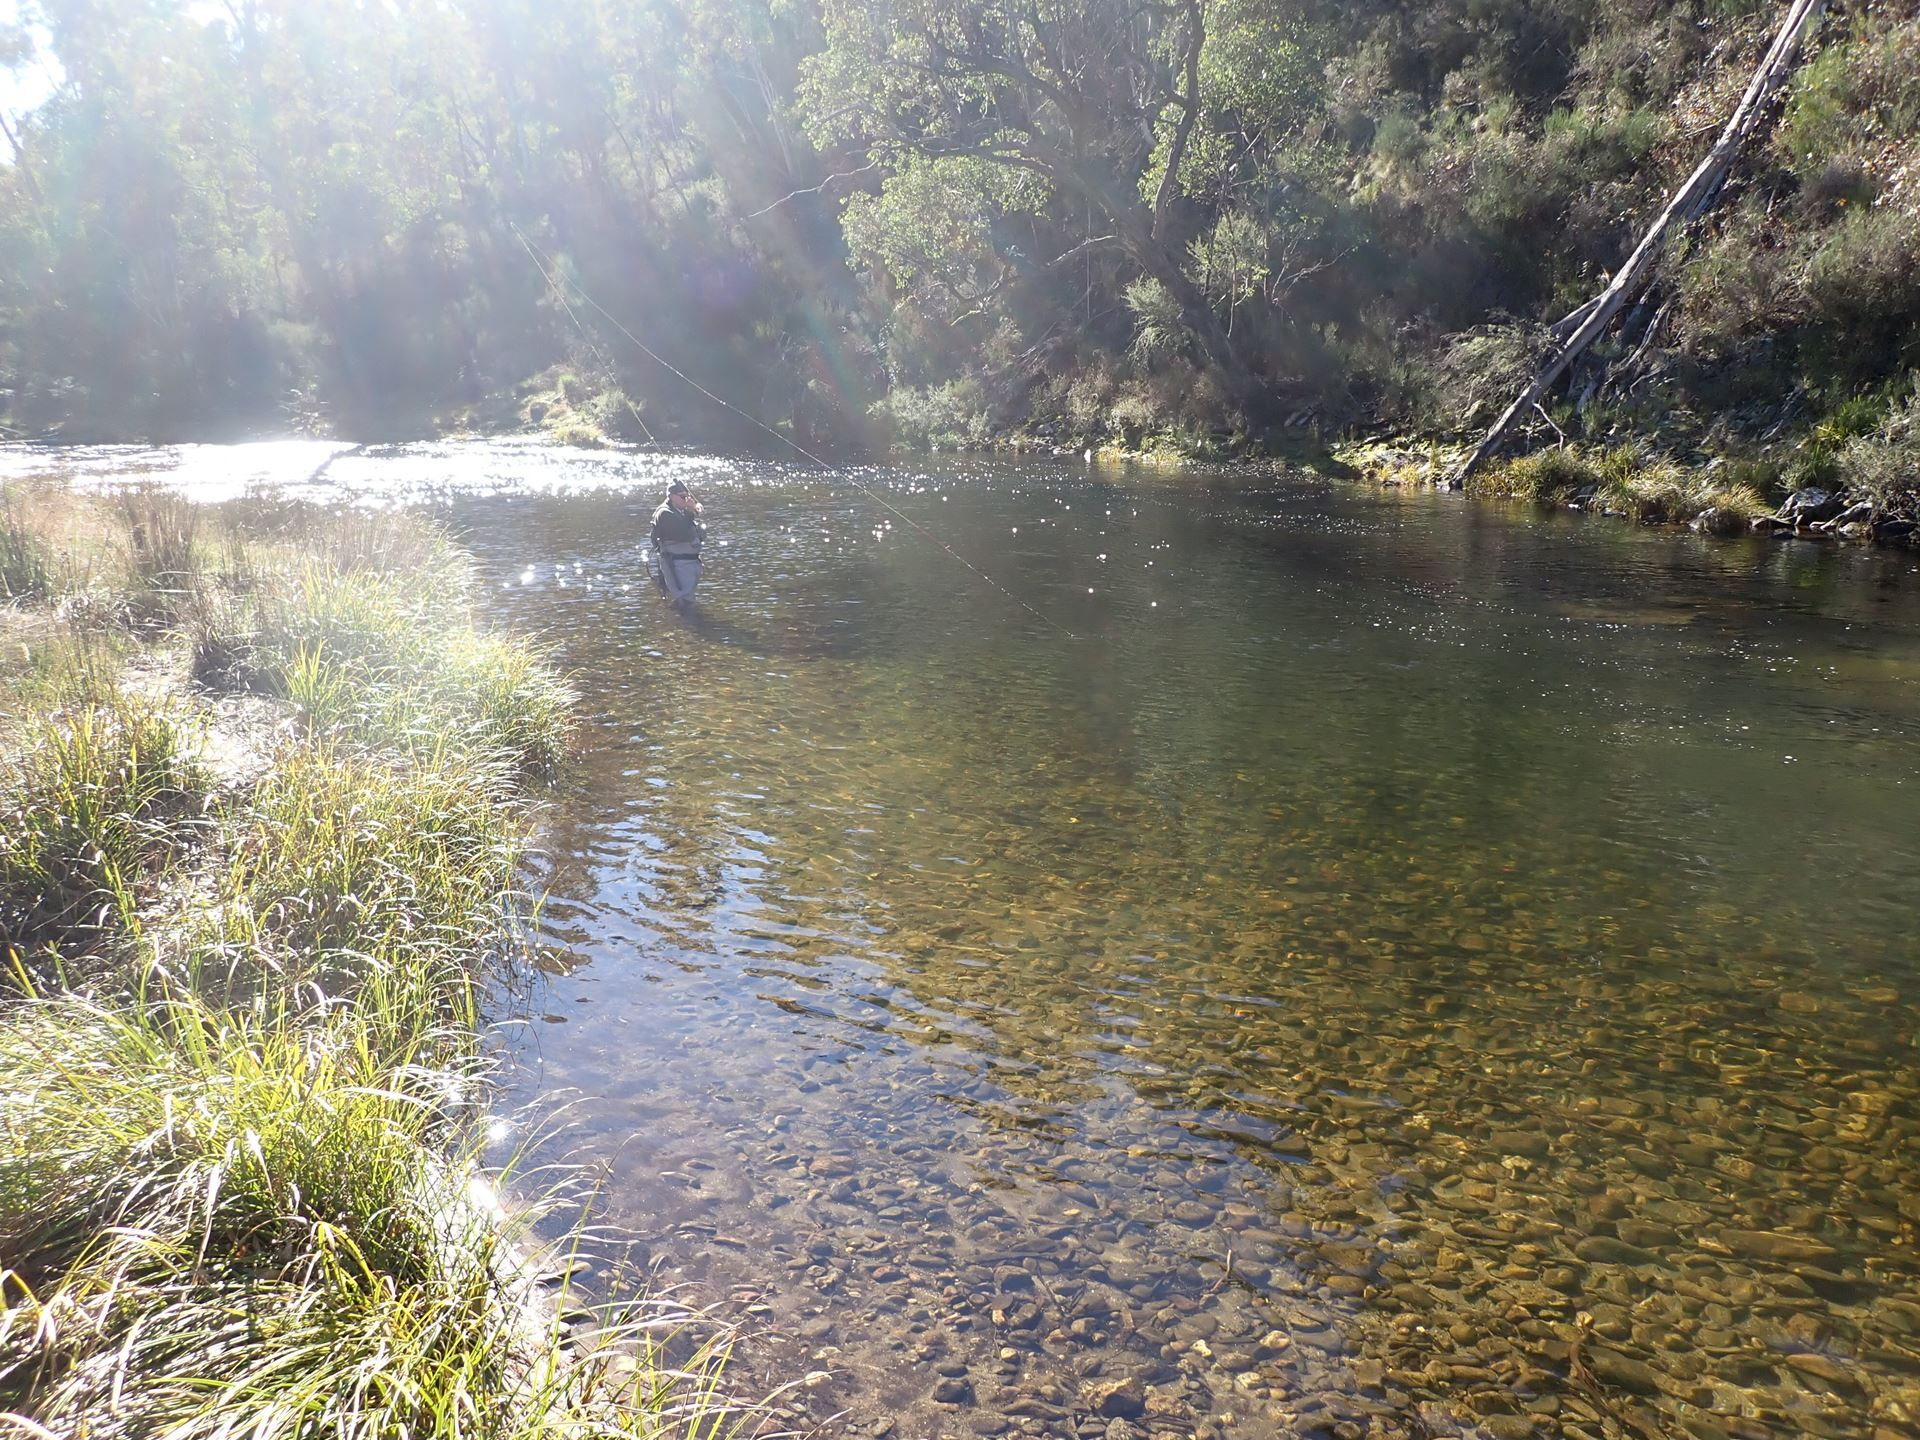 The first night having dinner at The Blue Duck Inn, during our trip to Big River (Upper Mitta Mitta River) in May 2021.